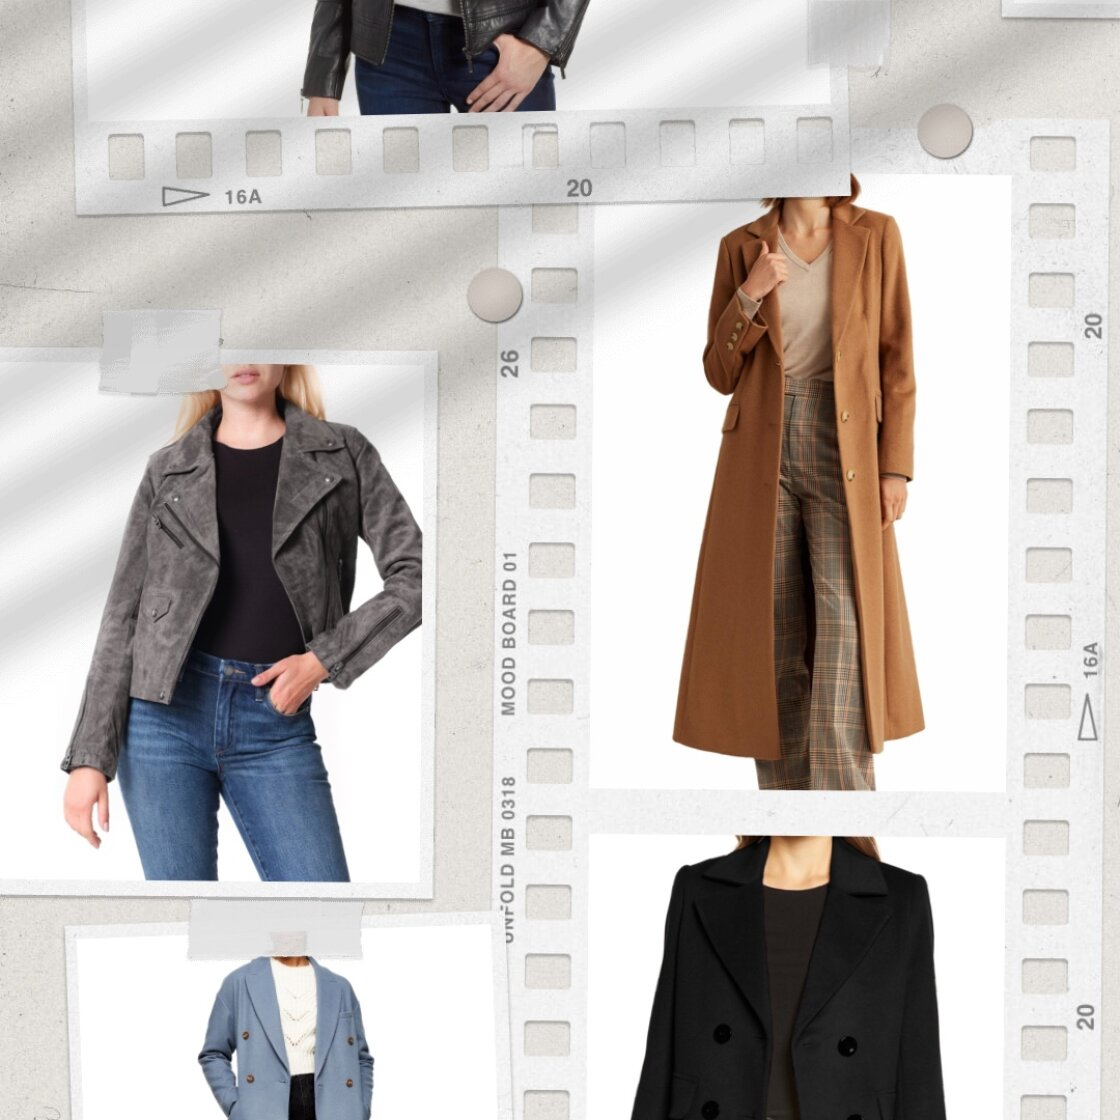 21 Jaw-Dropping On Sale Transitional Coats, Jackets, And Blazers On Nordstrom